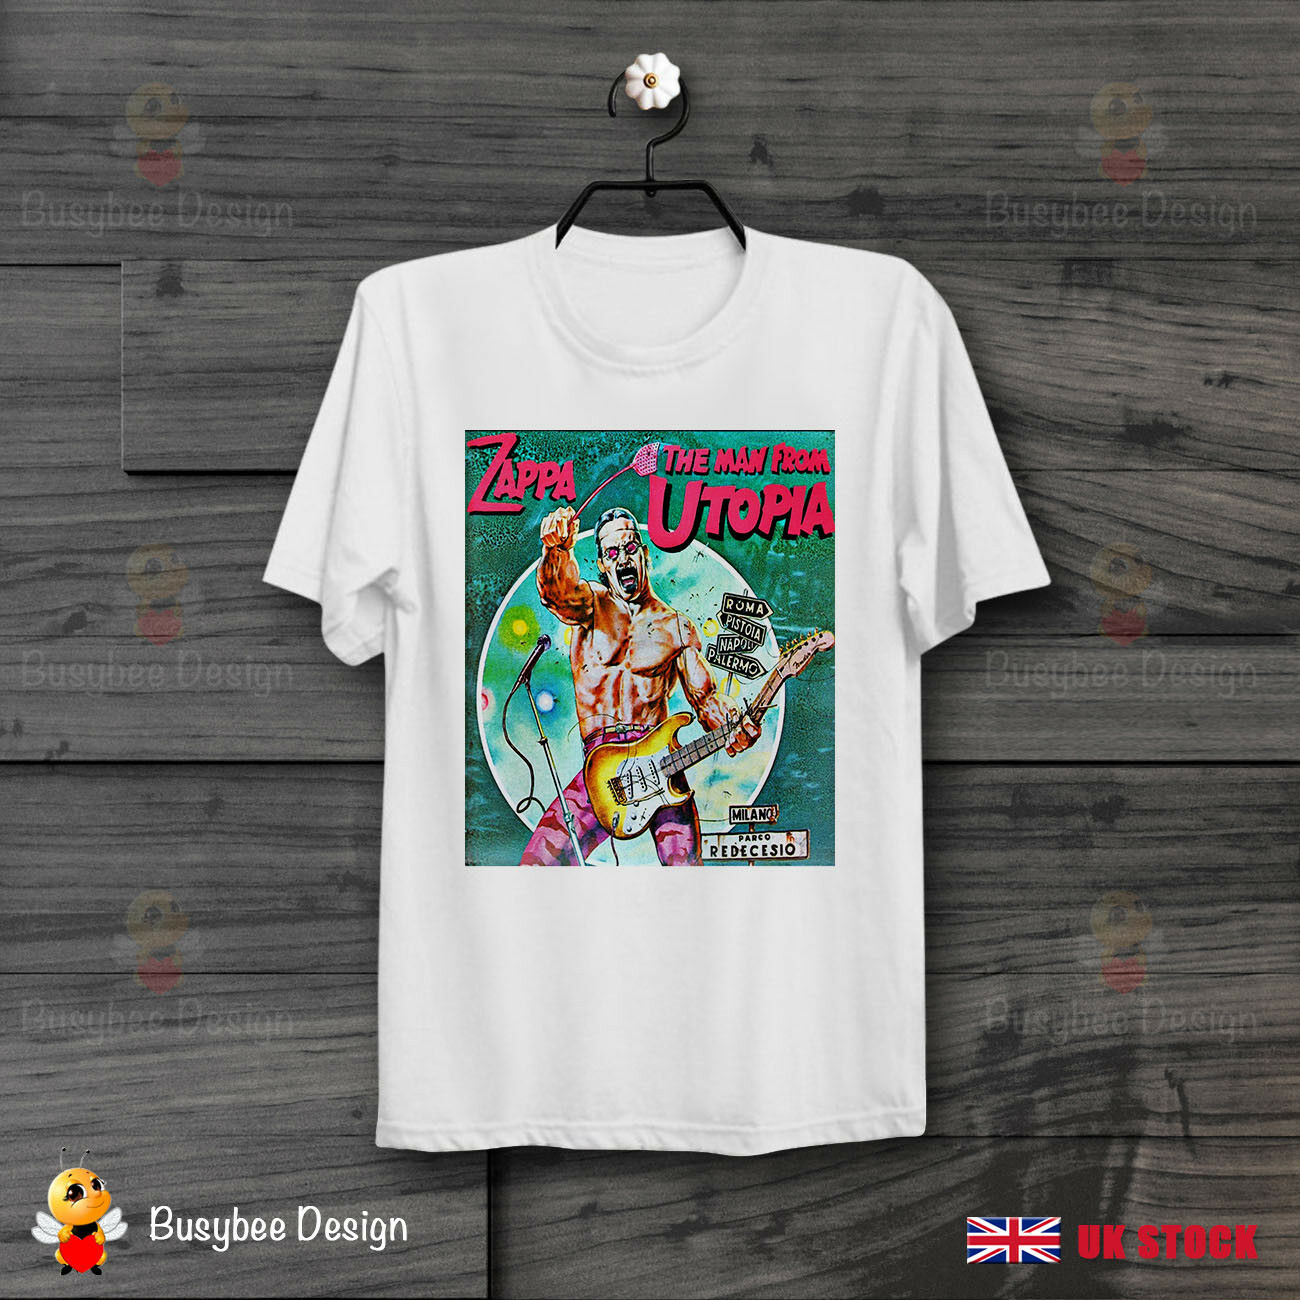 Frank Zappa The Man From Utopia Soundtrack Cool Vintage T Shirt B374 Mens Short Sleeve Tees image